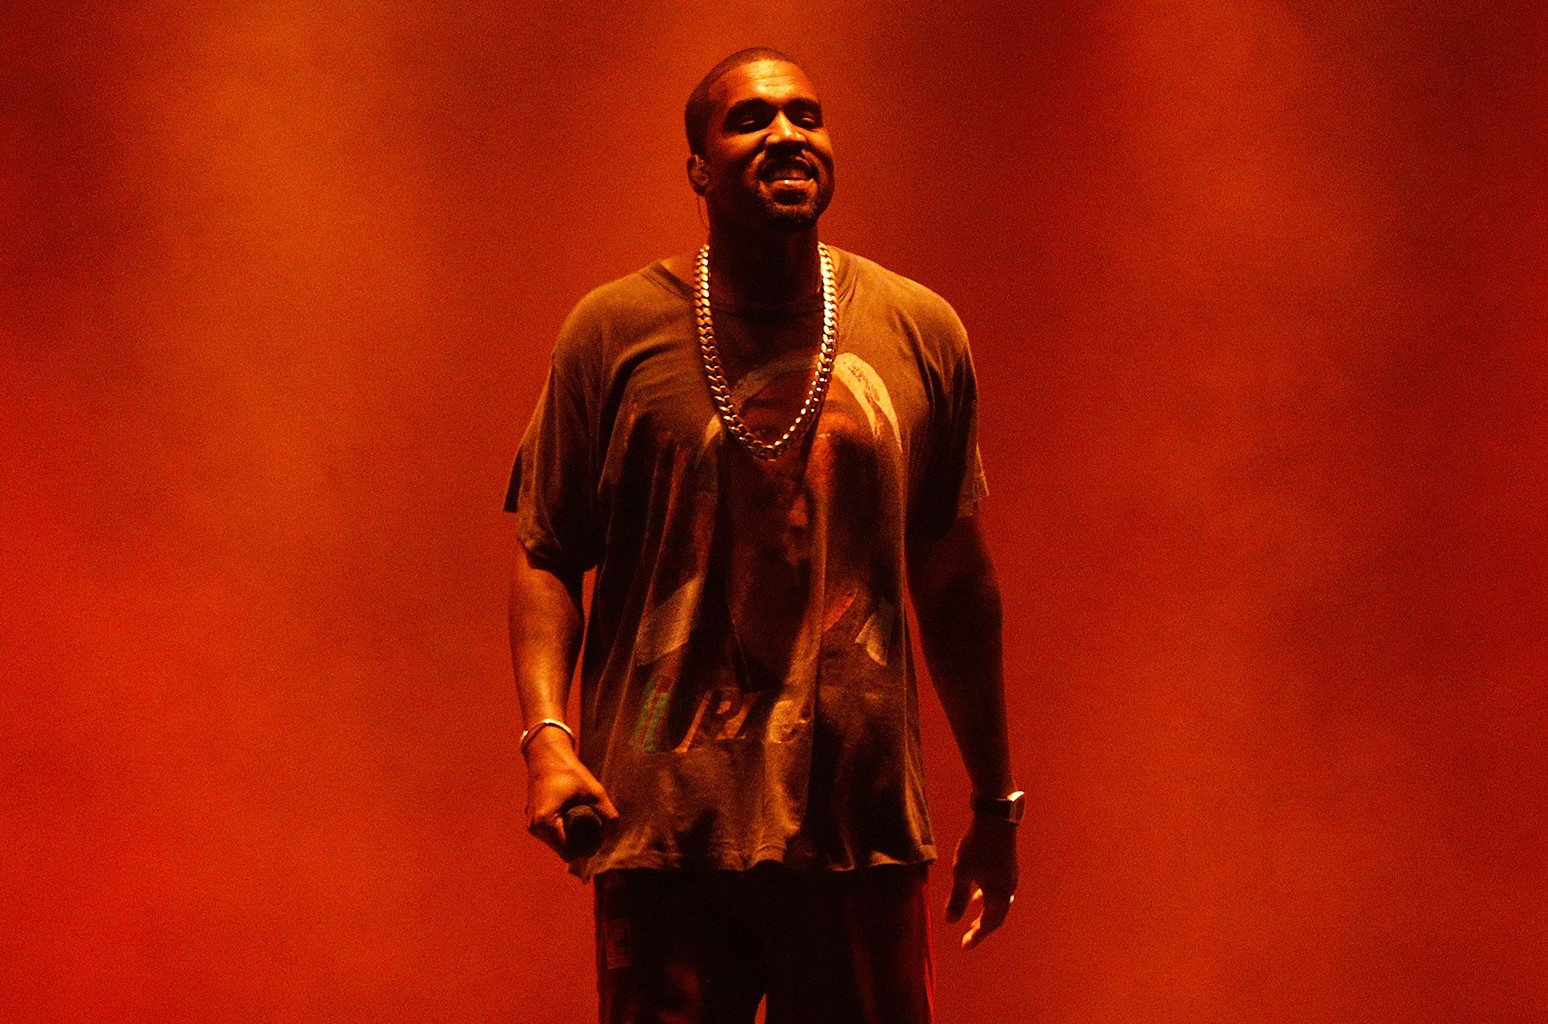 Kanye West performs during The Meadows Music & Arts Festival